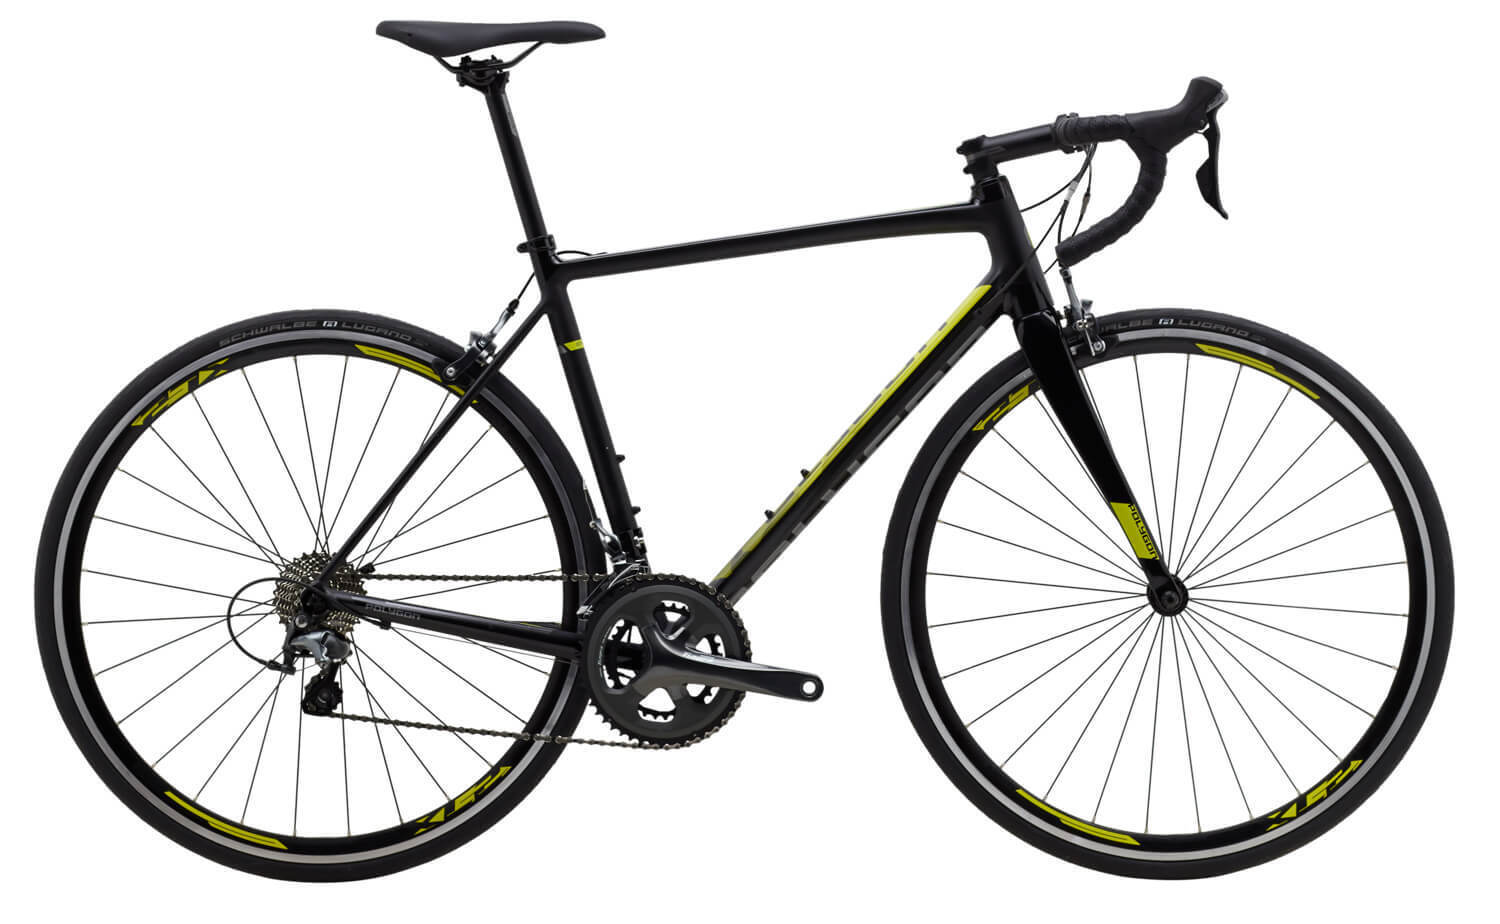 2019 Polygon Strattos S4 Shimano Tiagra Road Bike